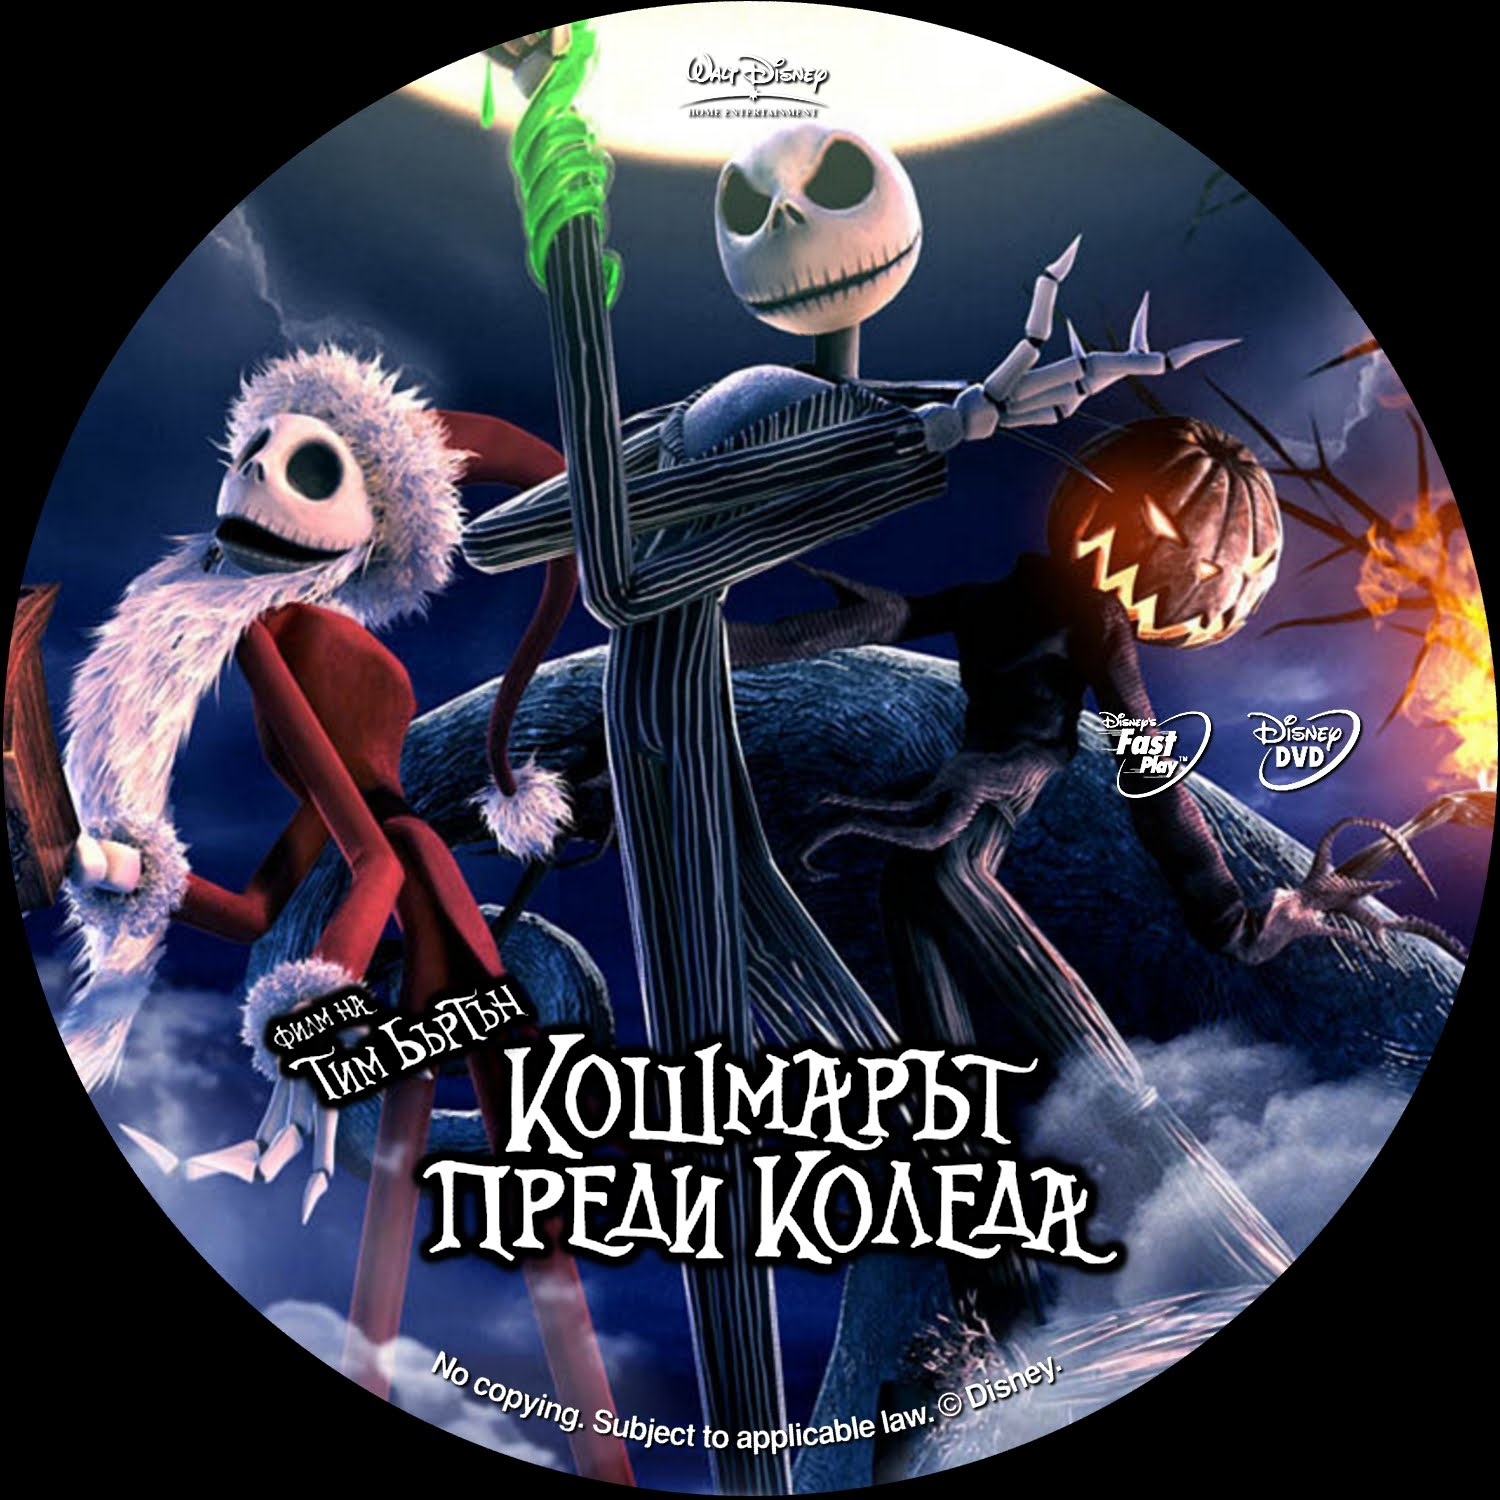 The Nightmare Before Christmas Dvd Images | TheCelebrityPix